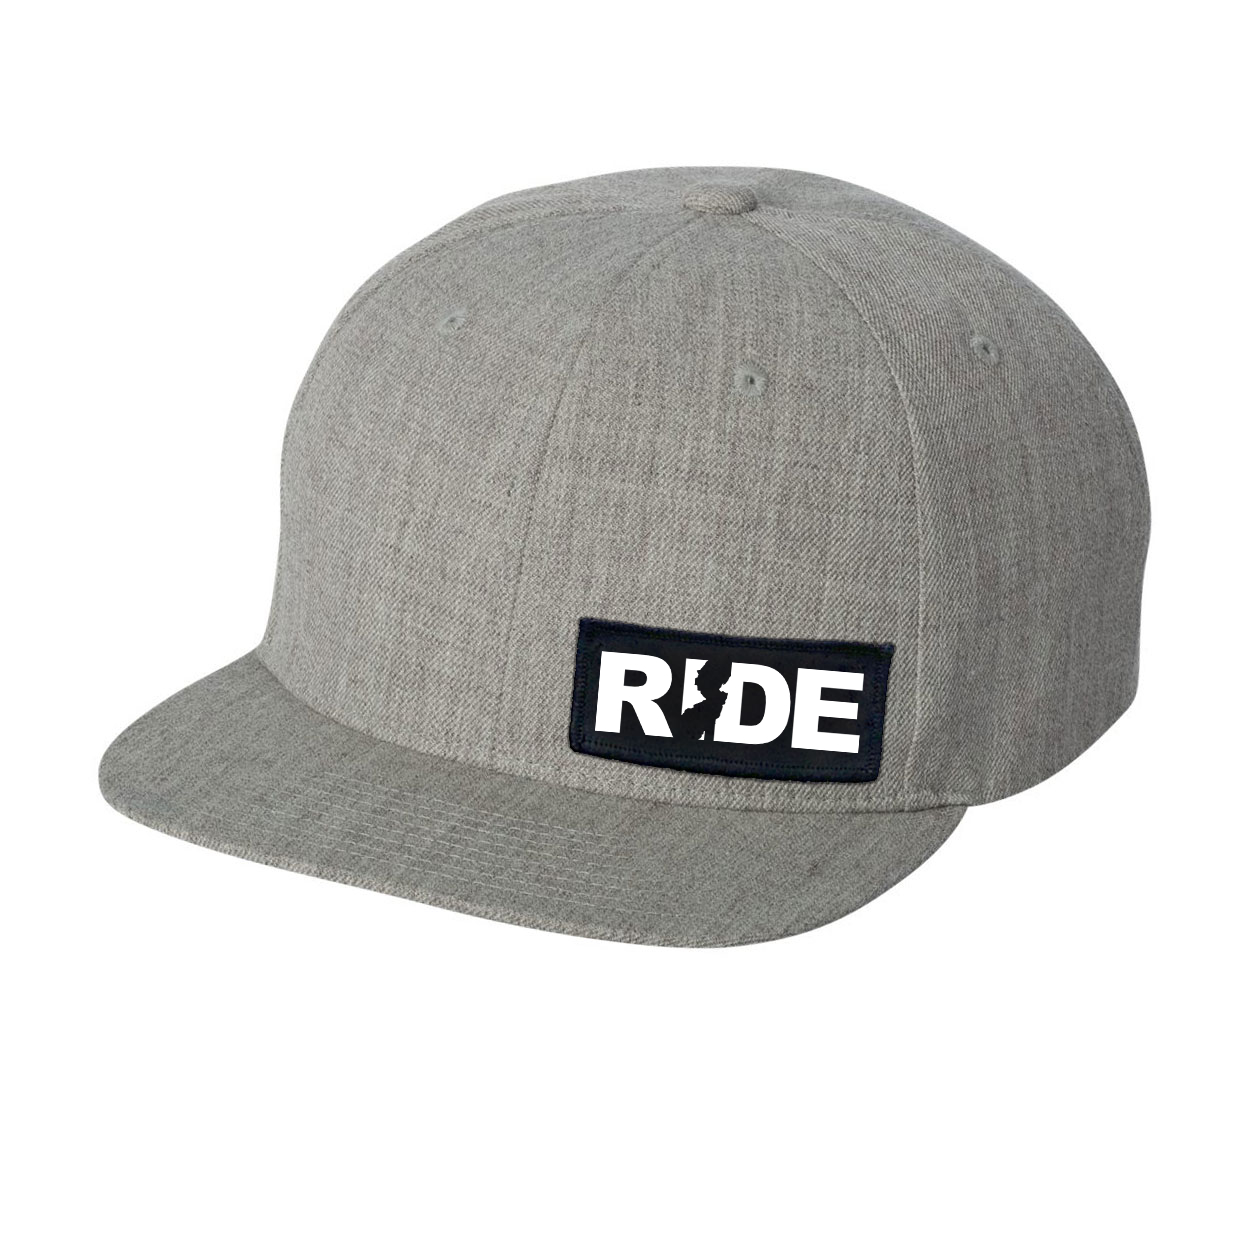 Ride New Jersey Night Out Woven Patch Flat Brim Snapback Hat Heather Gray (White Logo)